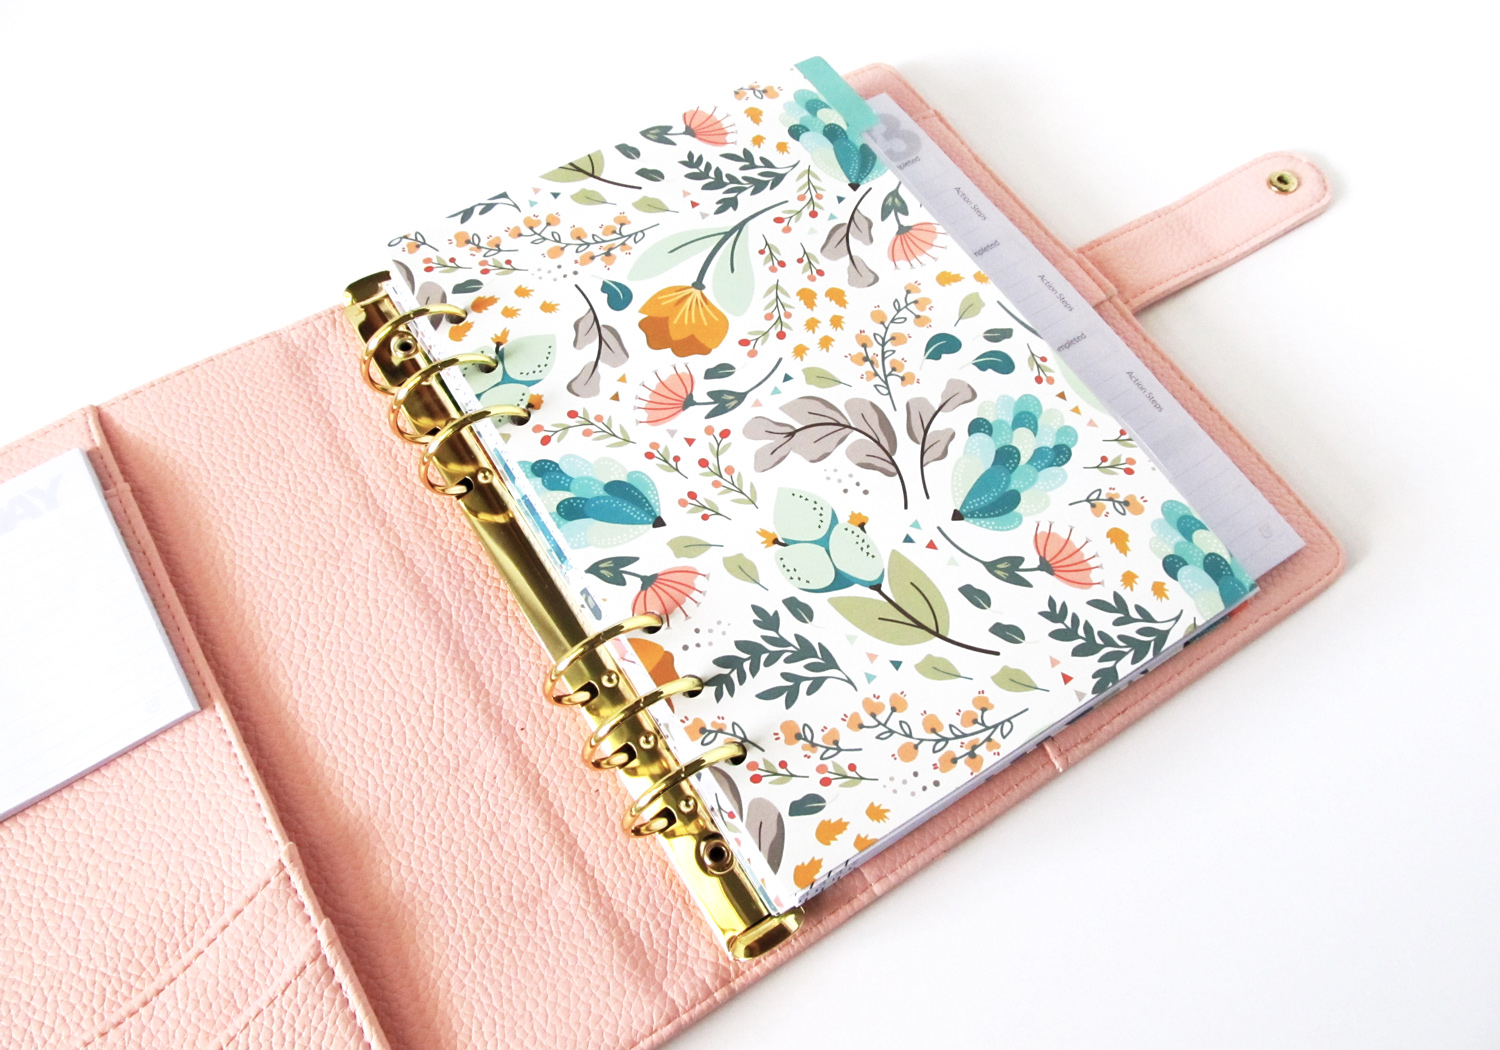 The custom pattern design I created for the first launch of the Green & Lyme Planners.  See the complete Green & Lyme project here .